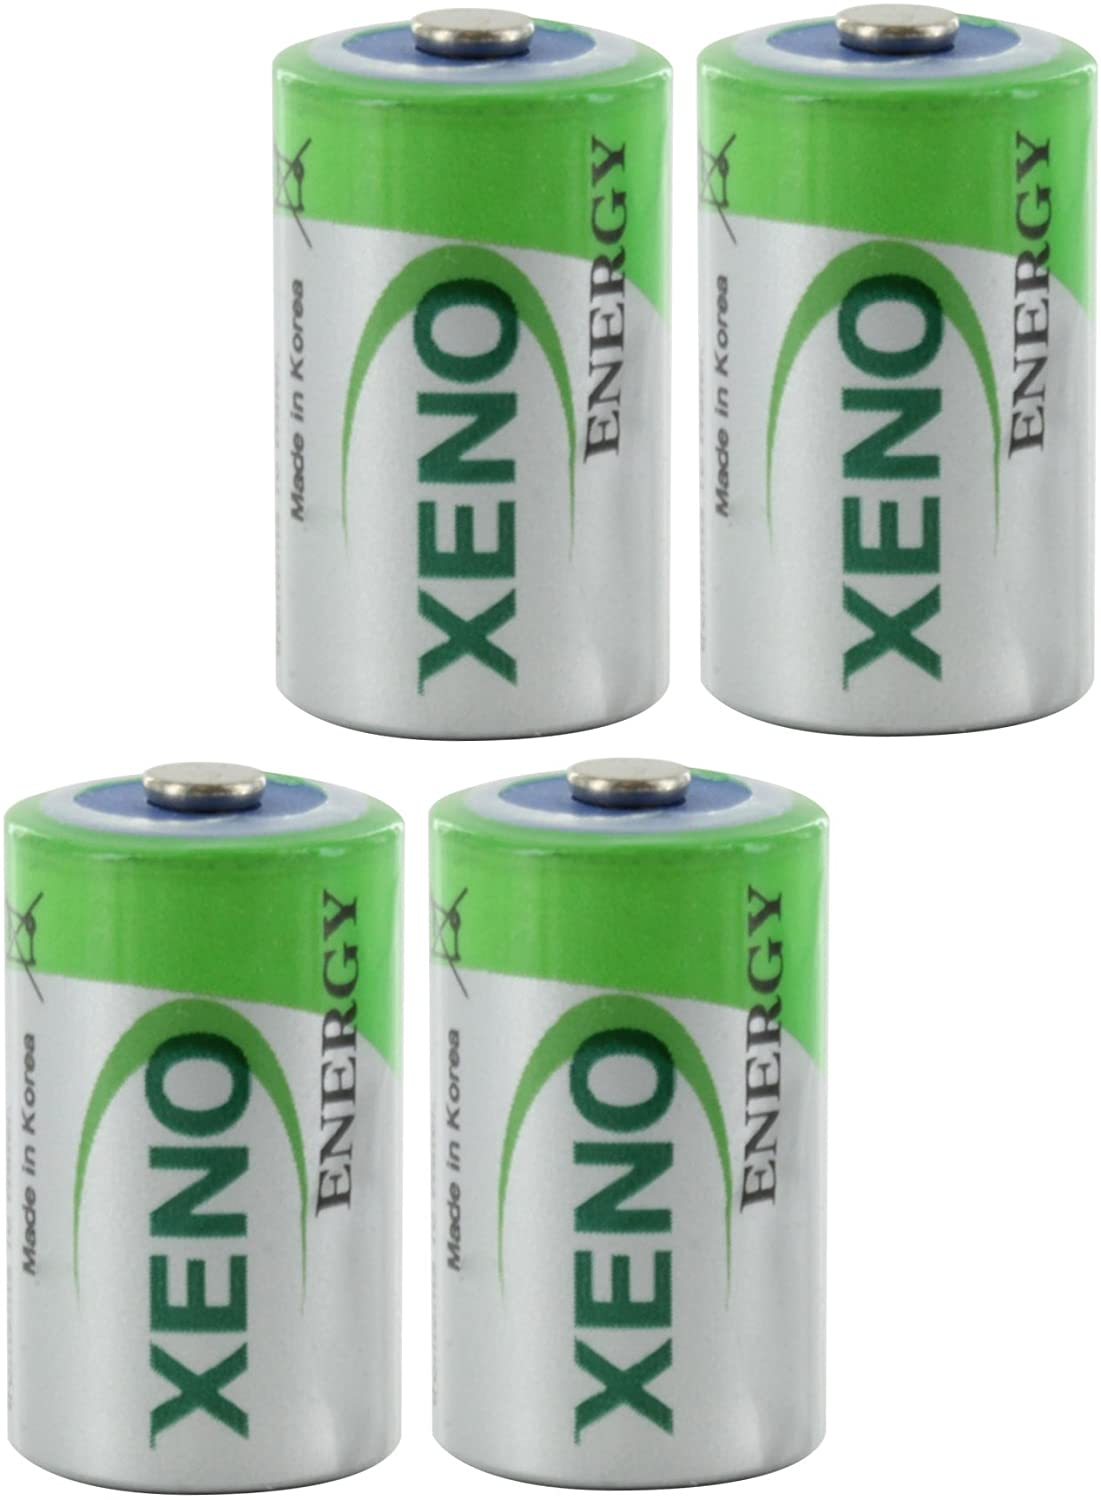 OmniCel ER14250 3.6V 1/2AA Lithium Standard Battery Button Top, 4 pack